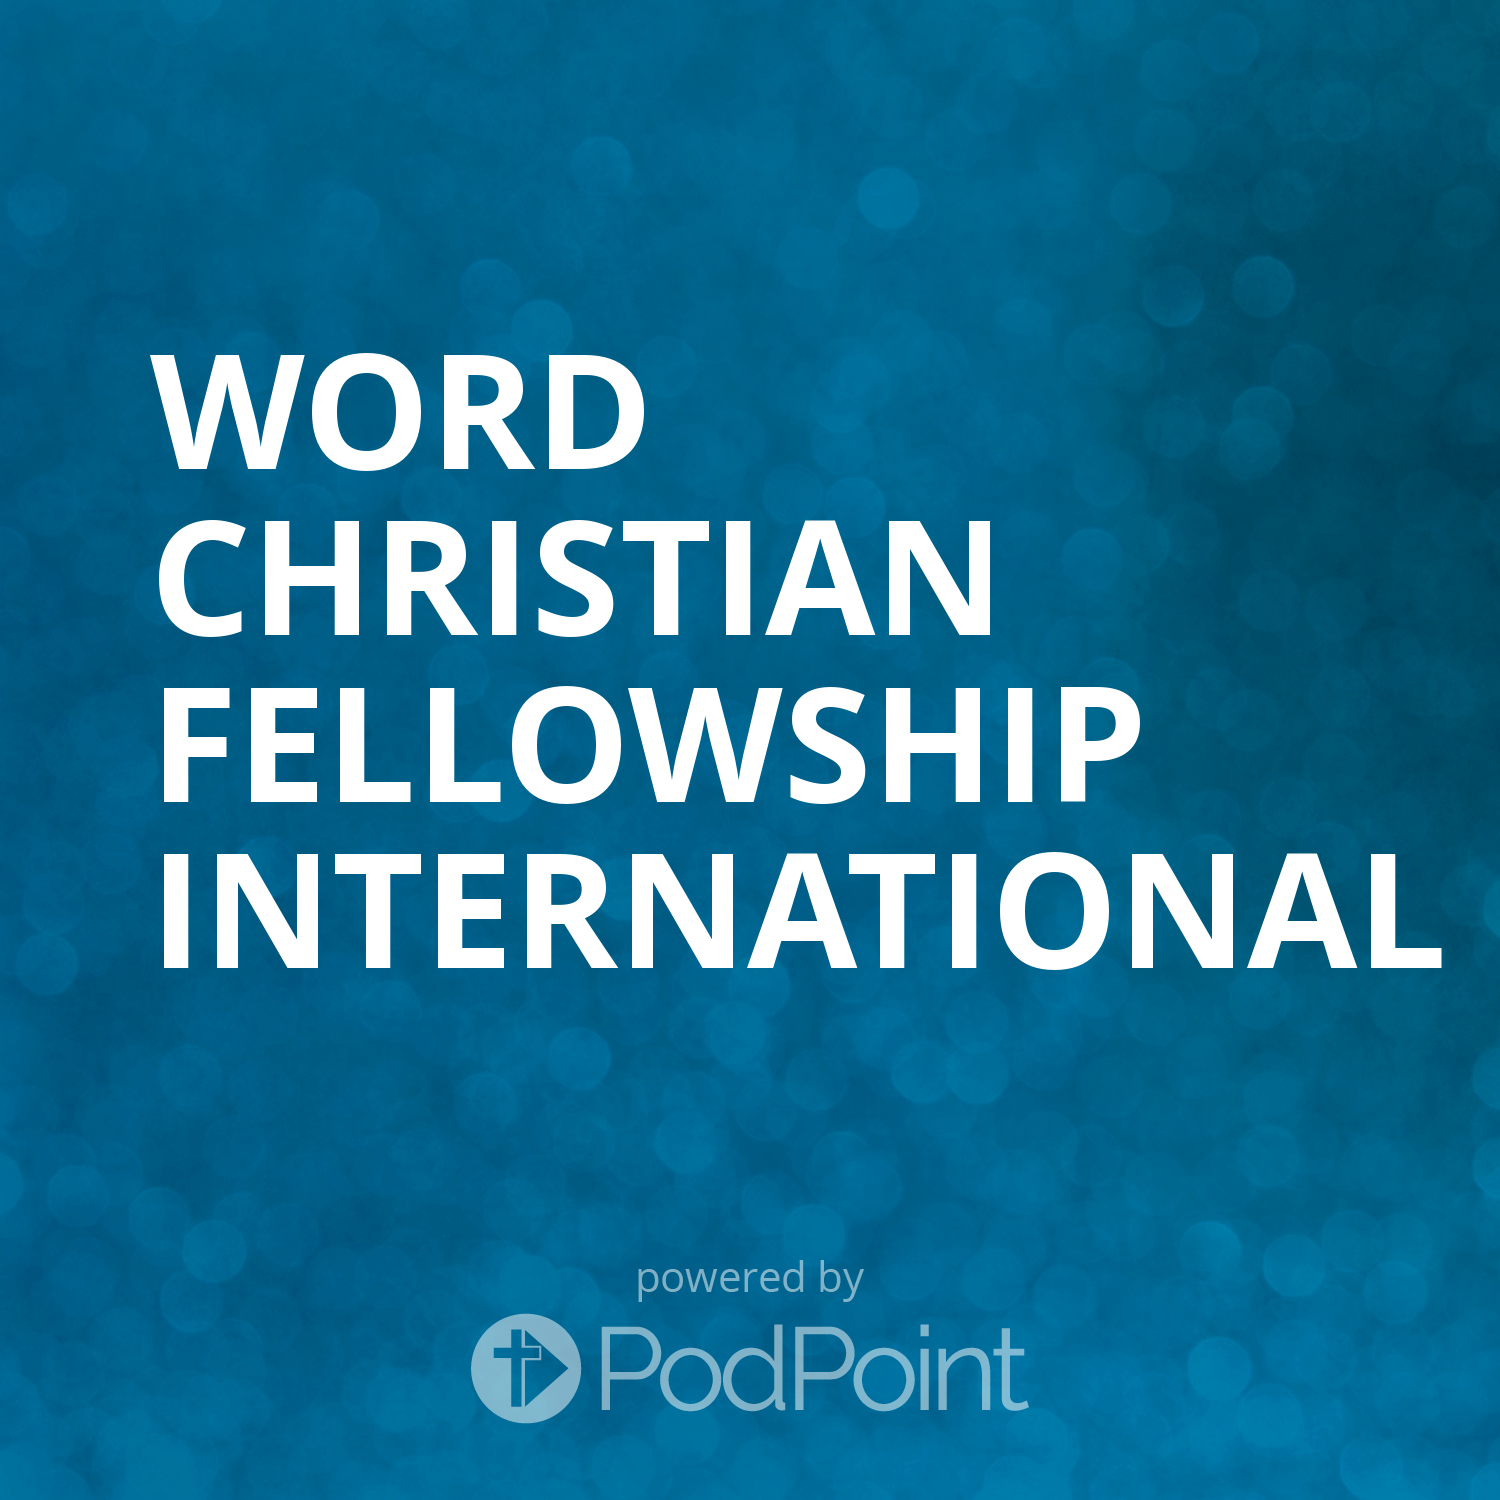 Word Christian Fellowship International